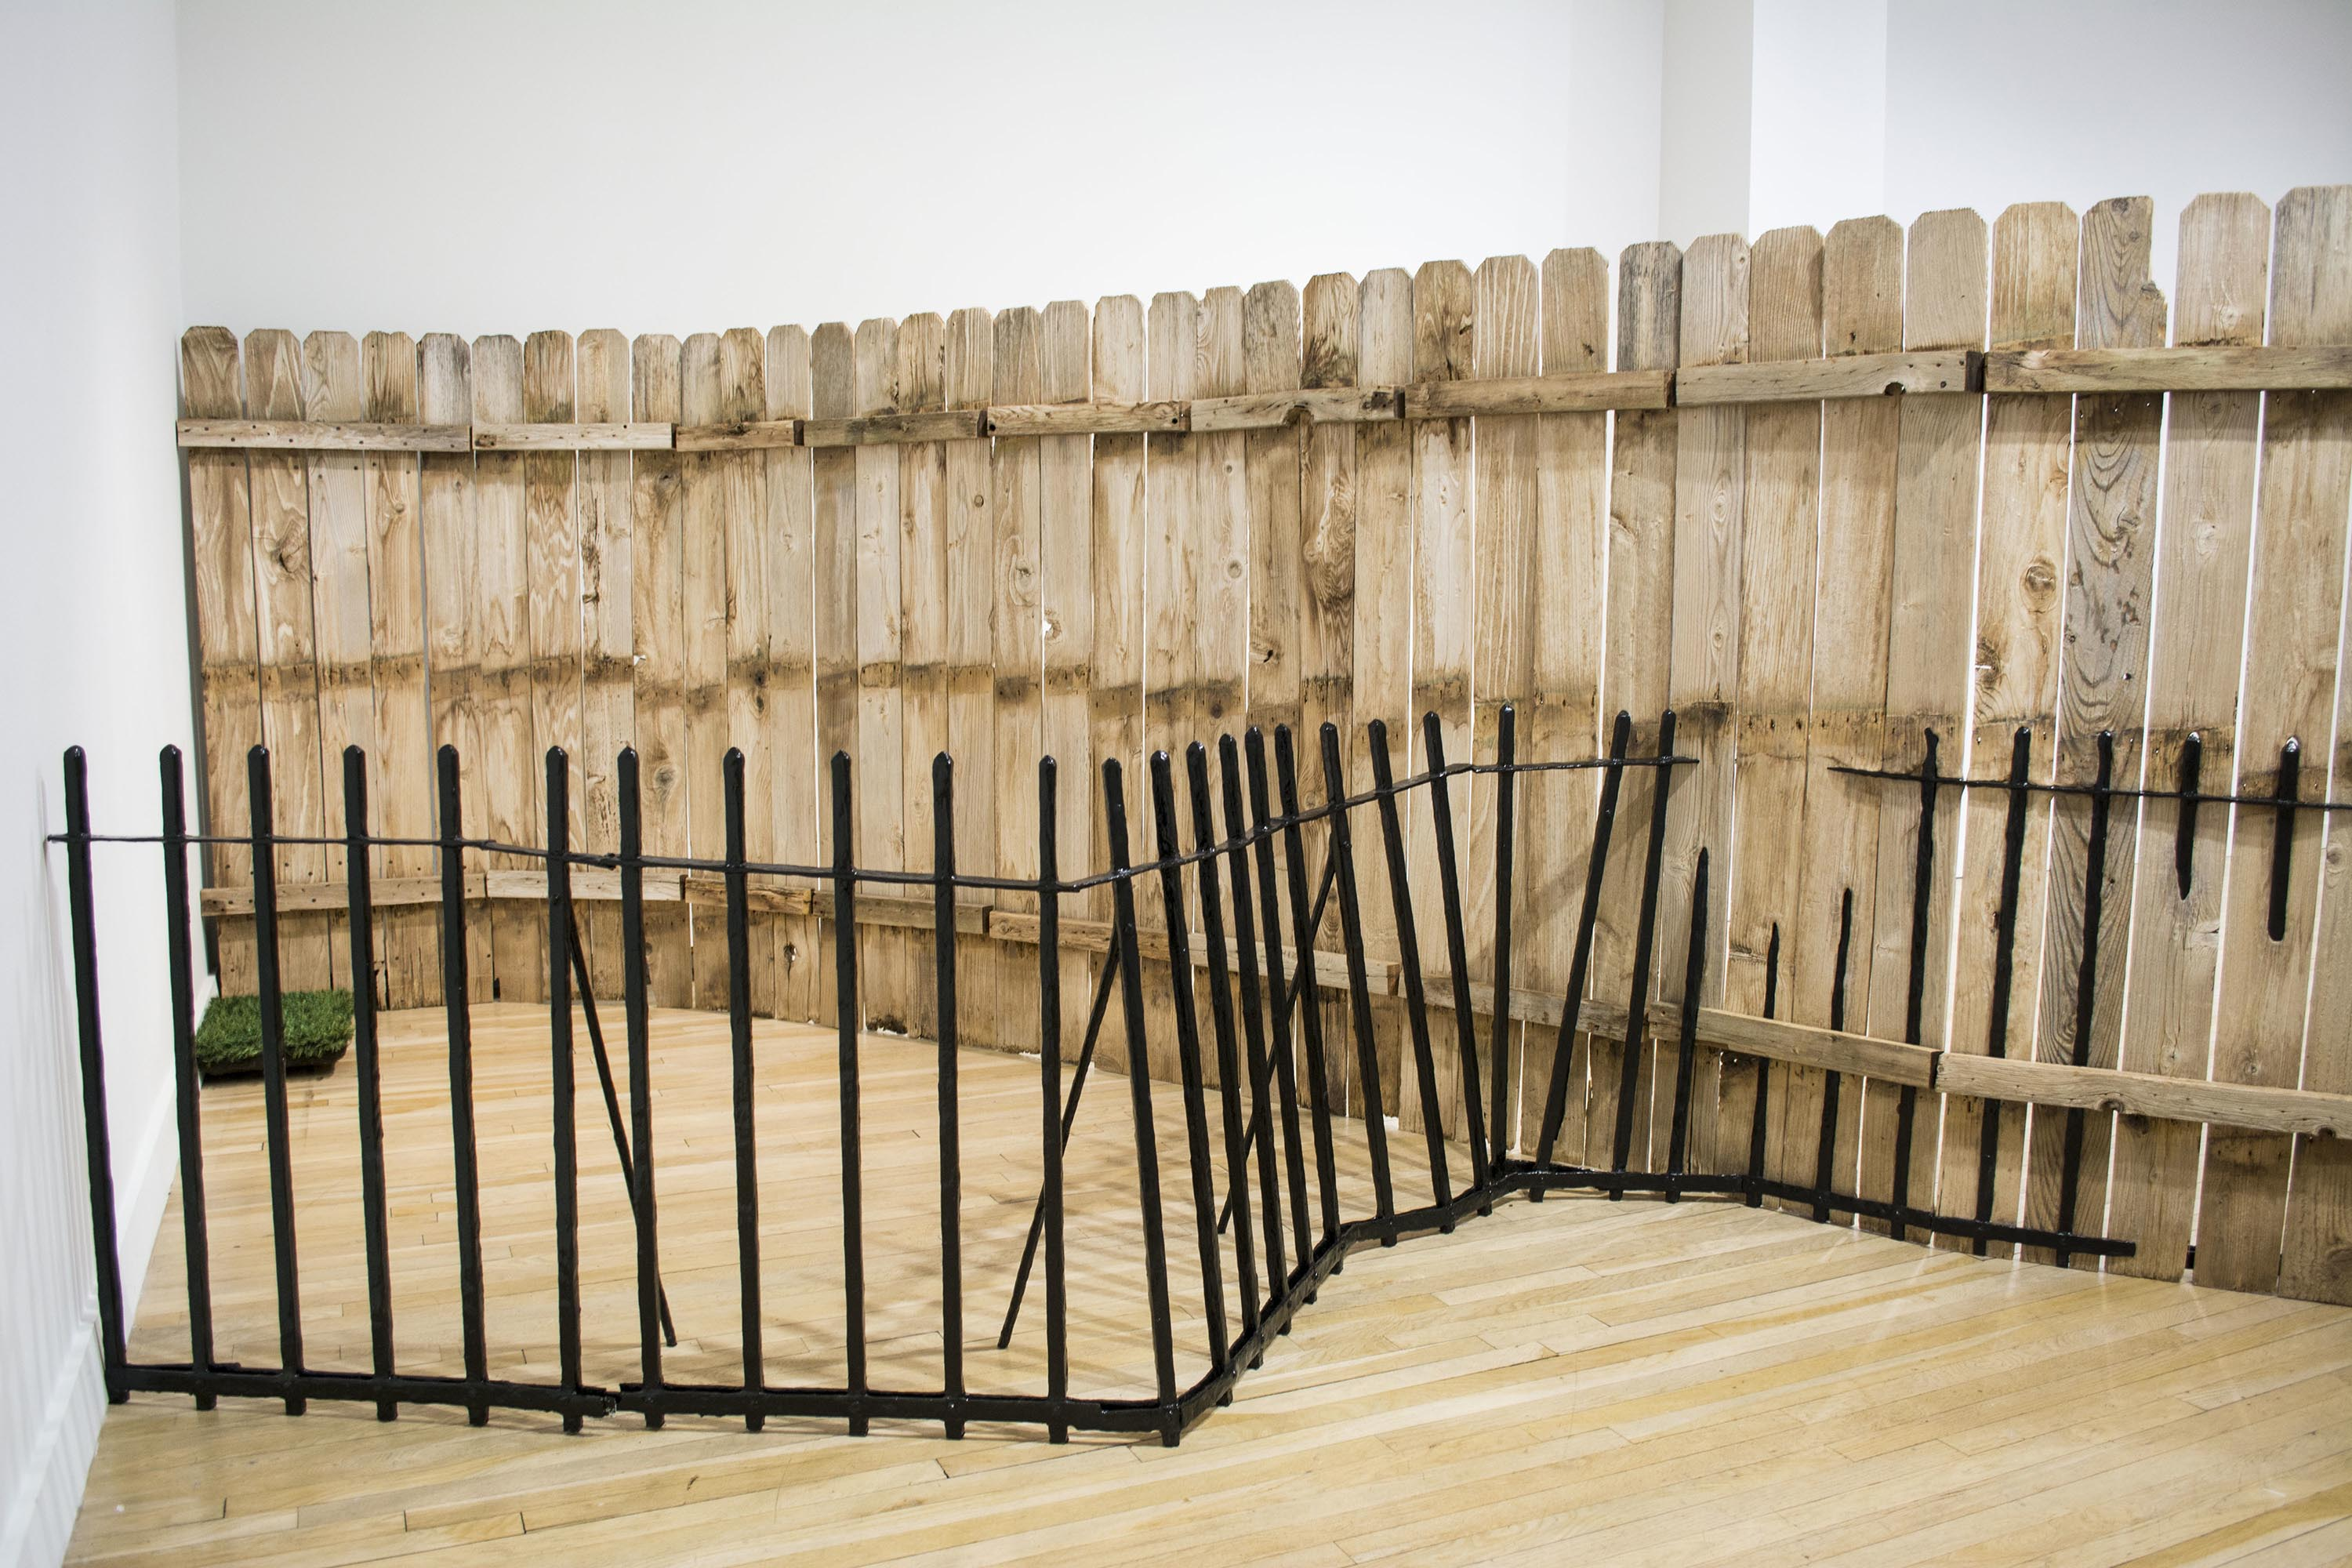 Fence with Grass (detail 2016 Wood, epoxy putty, fabric, latex and acrylic paint, various mechanized parts Dimensions varied documentation here: https://vimeo.com/189543936